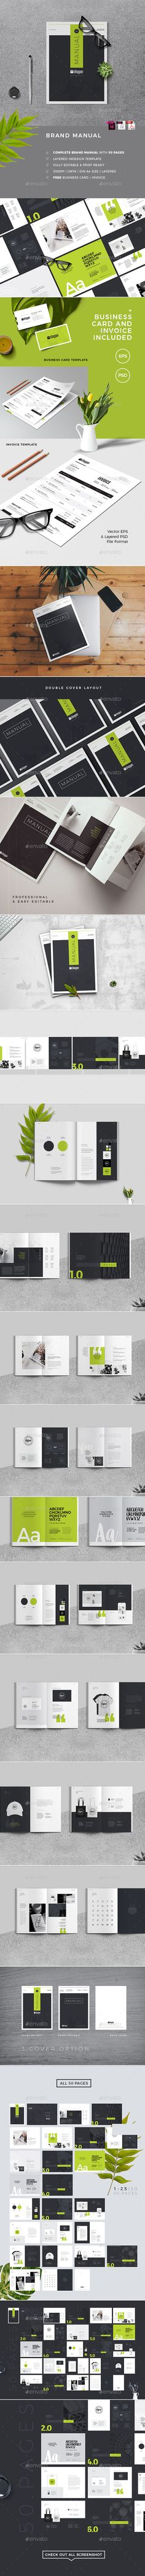 Brand Manual Template InDesign INDD - 50 Pages Professional Fully Editable